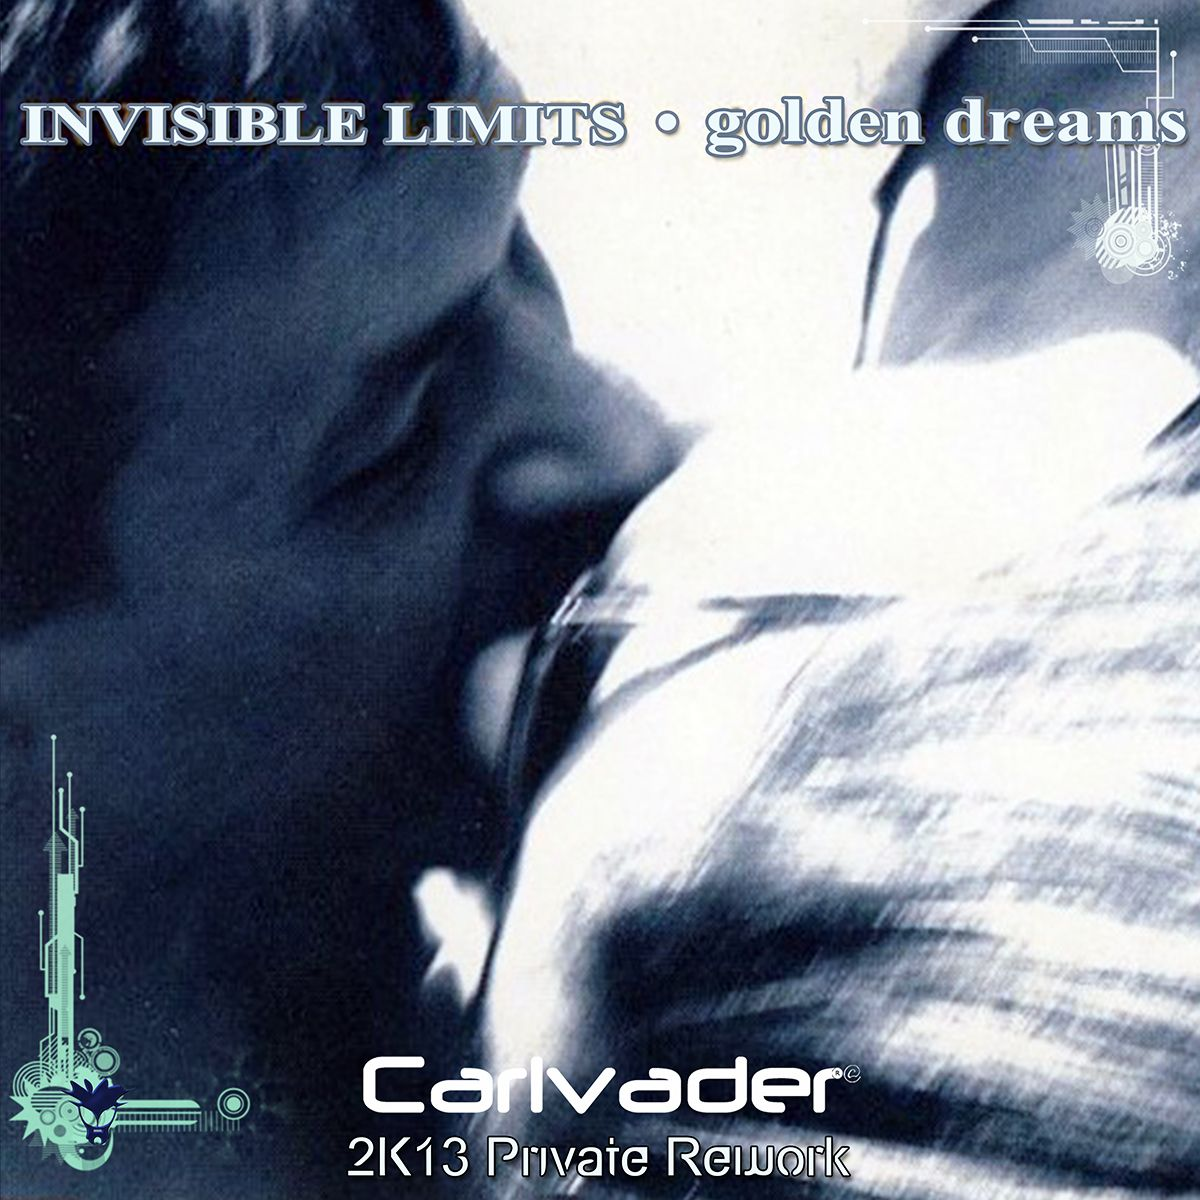 2013_05_Img_Rmx_InvisibleLimits-GoldenDreams.jpg